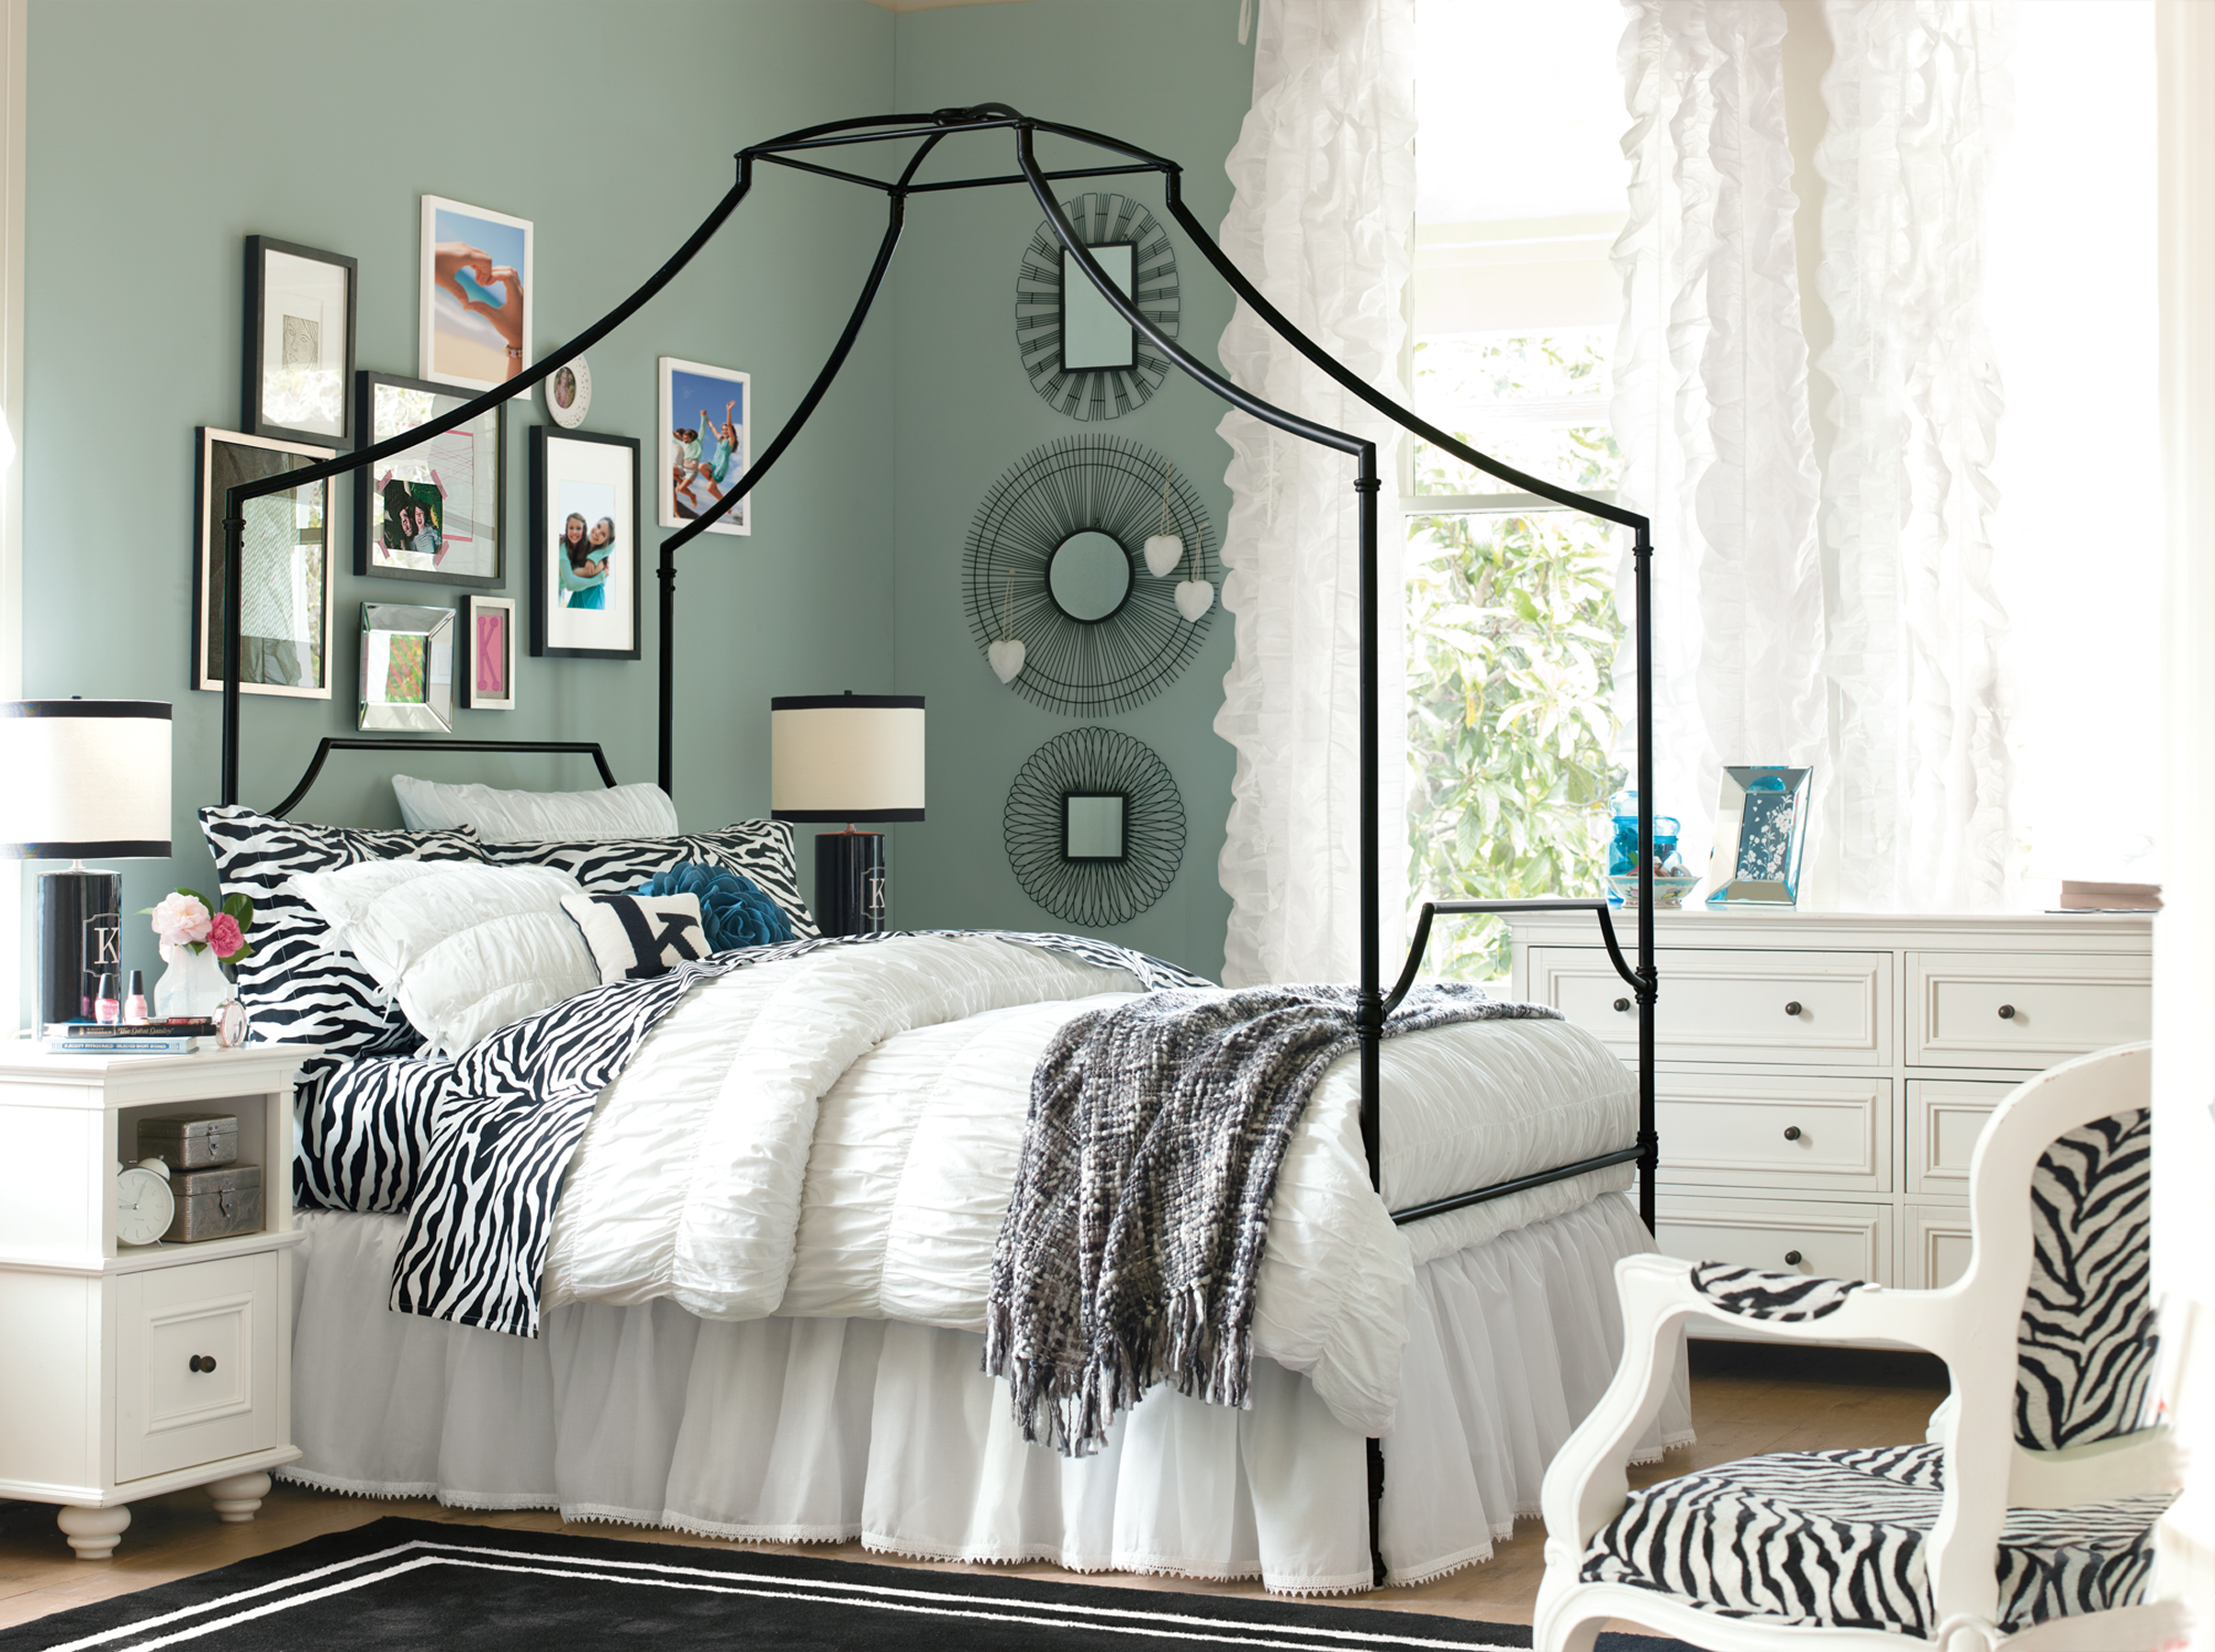 pottery barn bedding teen style homesfeed. Black Bedroom Furniture Sets. Home Design Ideas